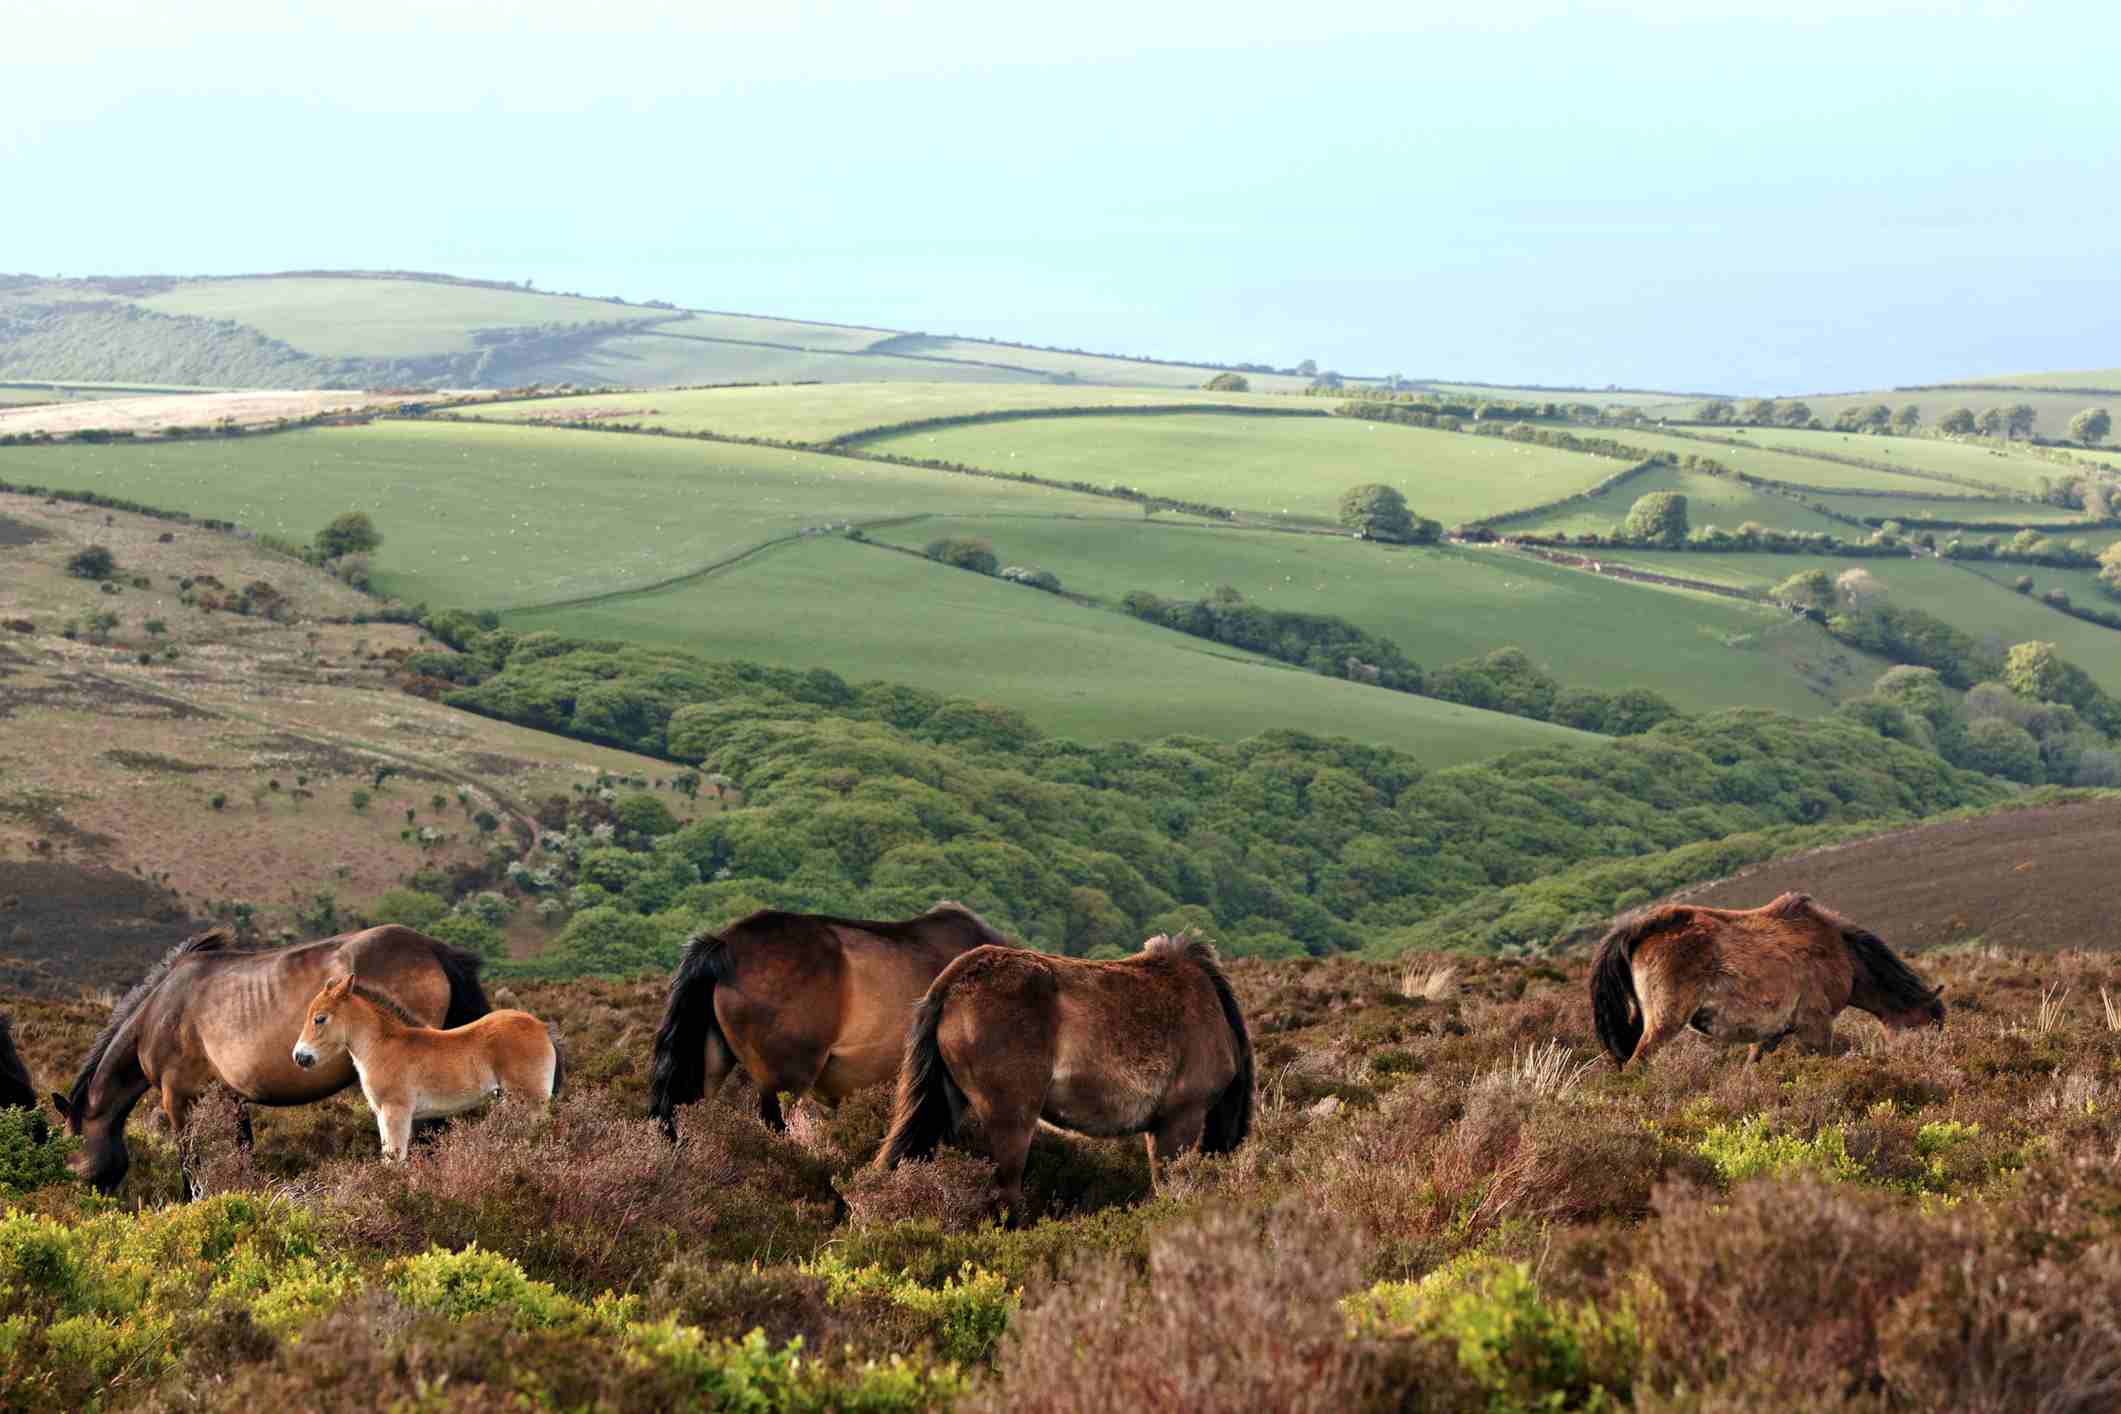 A band of Exmoor ponies grazes in a high meadow